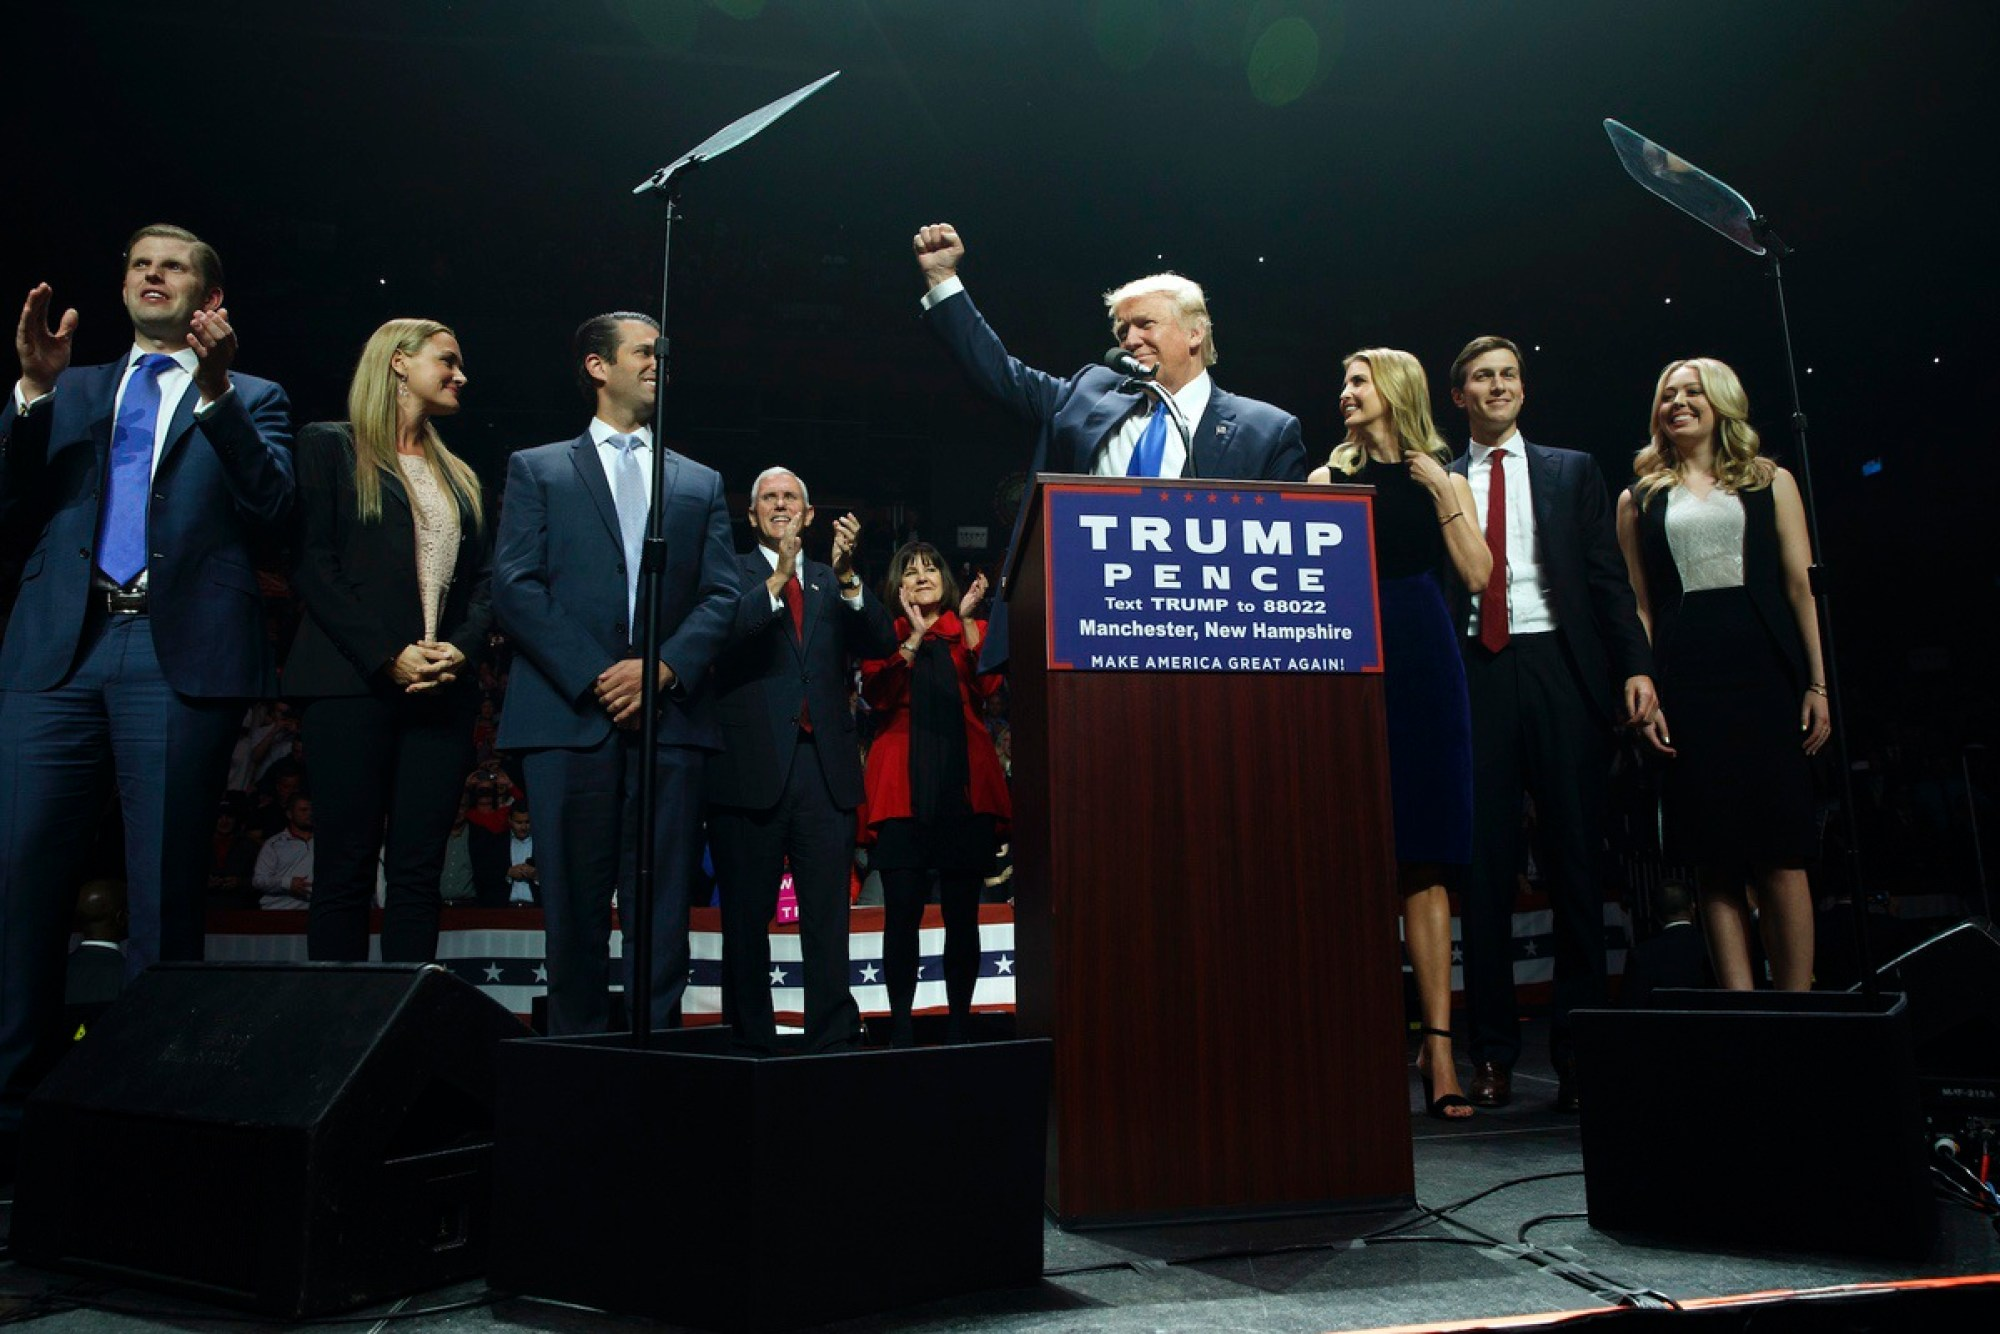 Republican presidential candidate Donald Trump pumps his fist as he arrives to speak during a campaign rally, Monday, Nov. 7, 2016, in Manchester, N.H. From left, Eric Trump, Vanessa Trump, Donald Trump Jr., Republican vice presidential candidate Gov. Mike Pence, R-Ind., Karen Pence, Trump, Ivanka Trump, Jared Kushner, and Tiffany Trump. (AP Photo/ Evan Vucci)